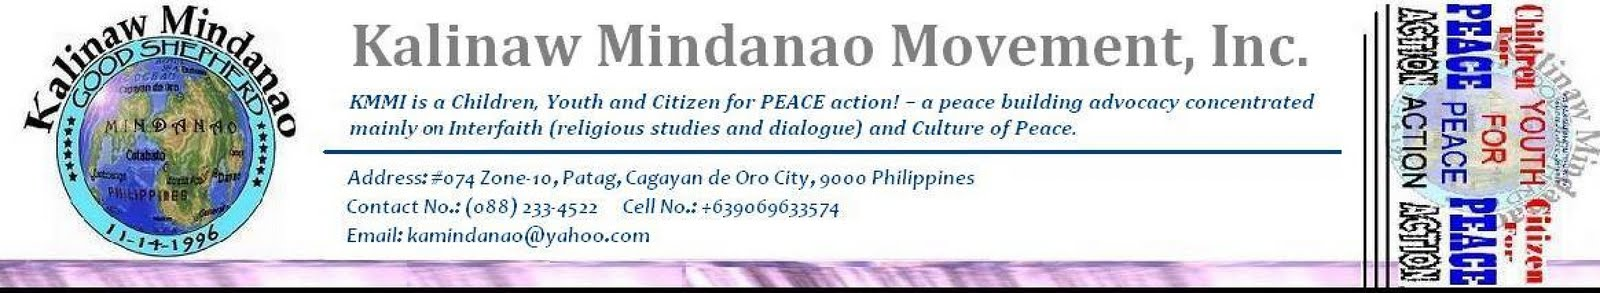 KALINAW MINDANAO MOVEMENT, INC.